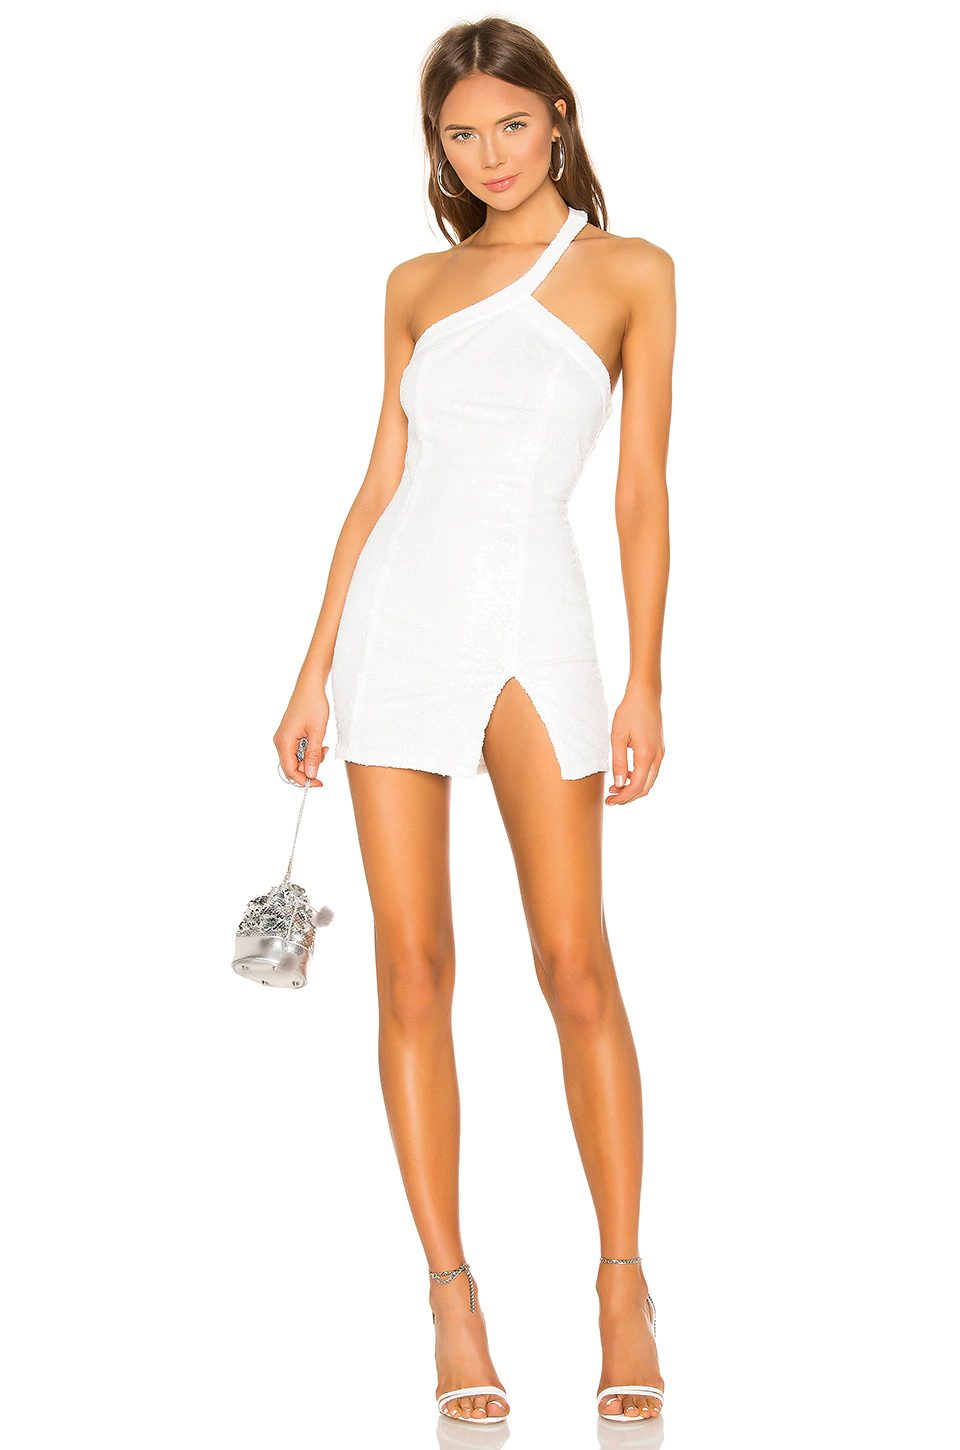 Sexy white one-shoulder dress